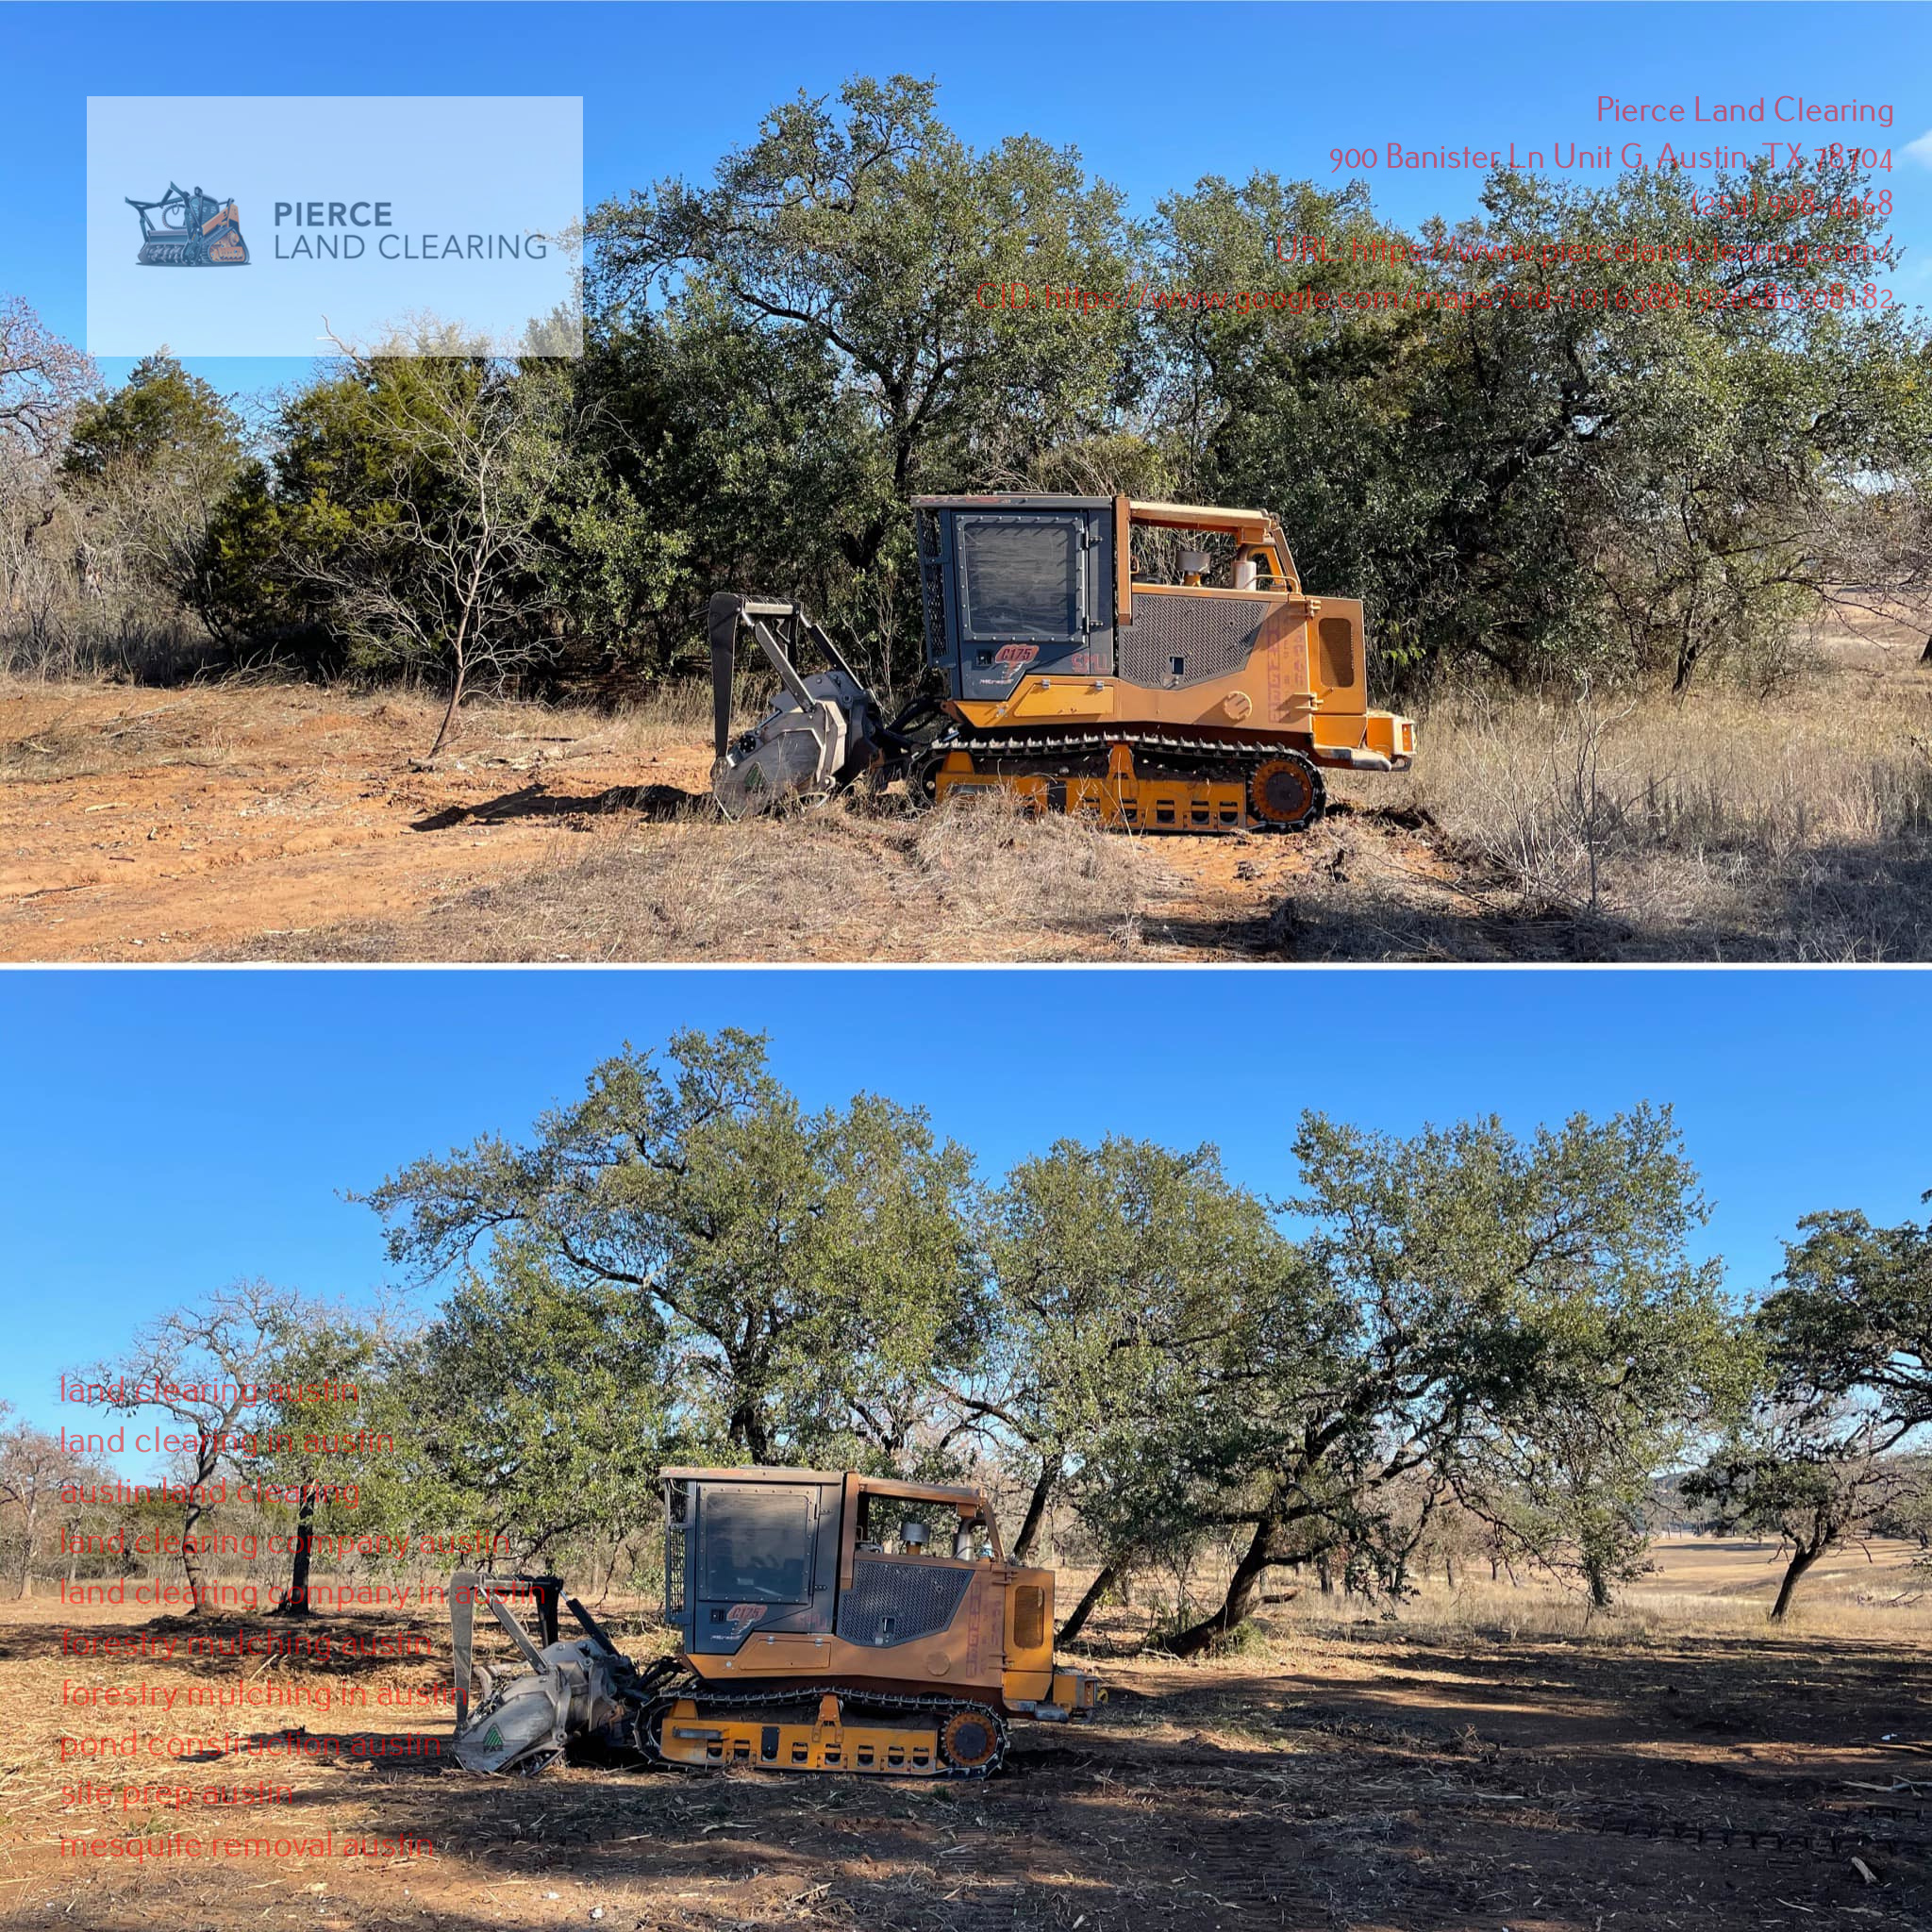 Pierce Land Clearing Stresses the Need to Seek Professional Forestry Mulching Services